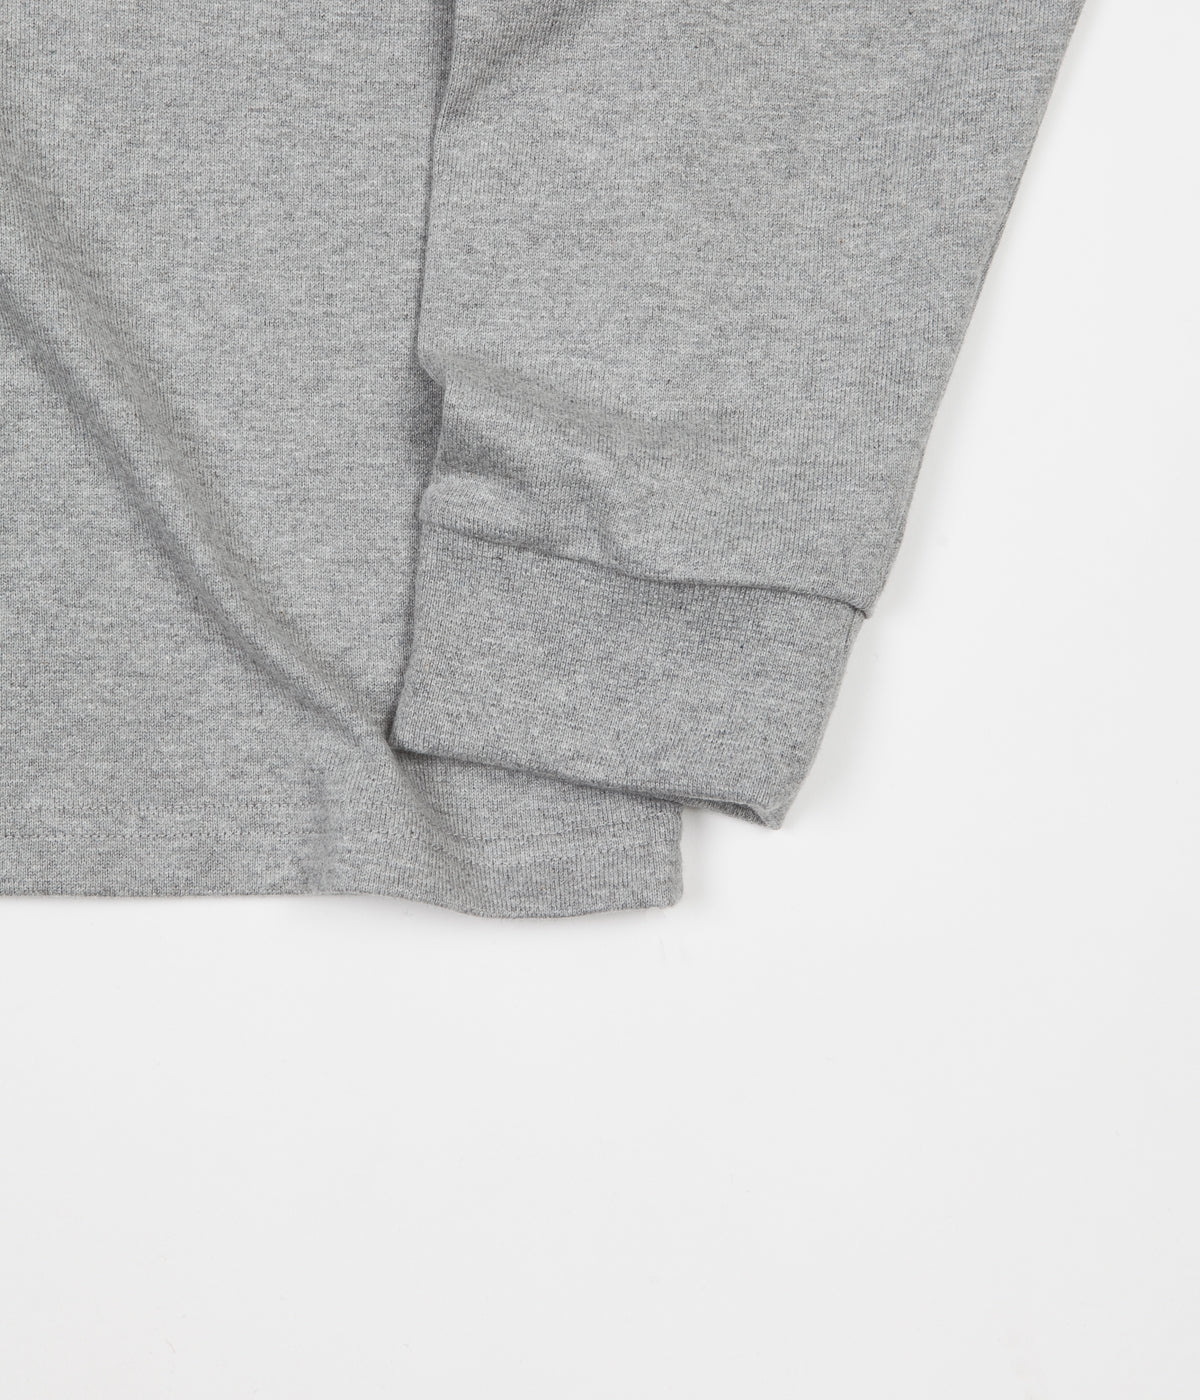 Polar Default Long Sleeve T-Shirt - Heather Grey